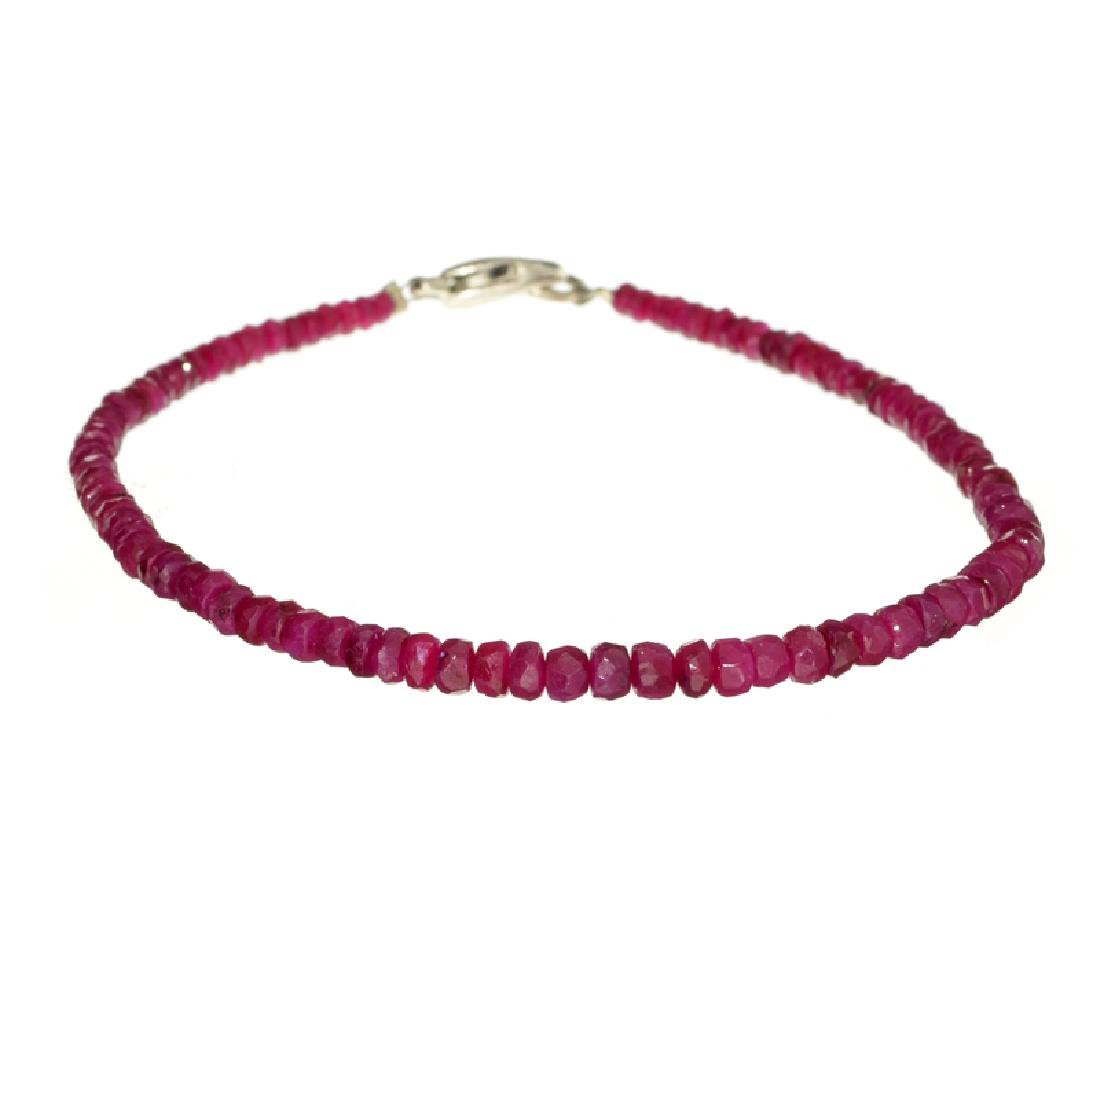 APP: 0.8k 40.00CT Round Cut Bead Ruby And Sterling